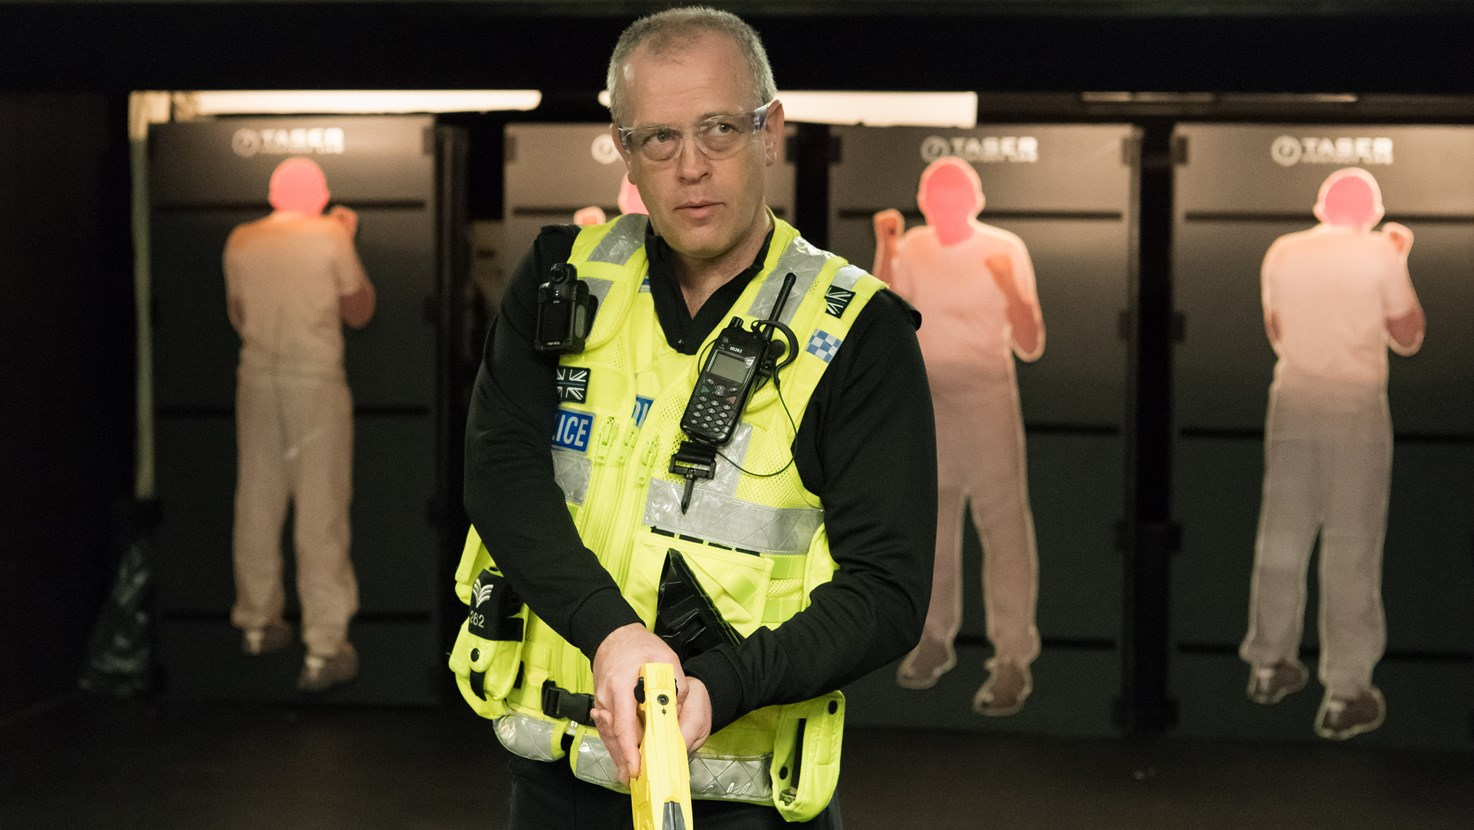 New latest generation tasers are being introduced in Lincolnshire